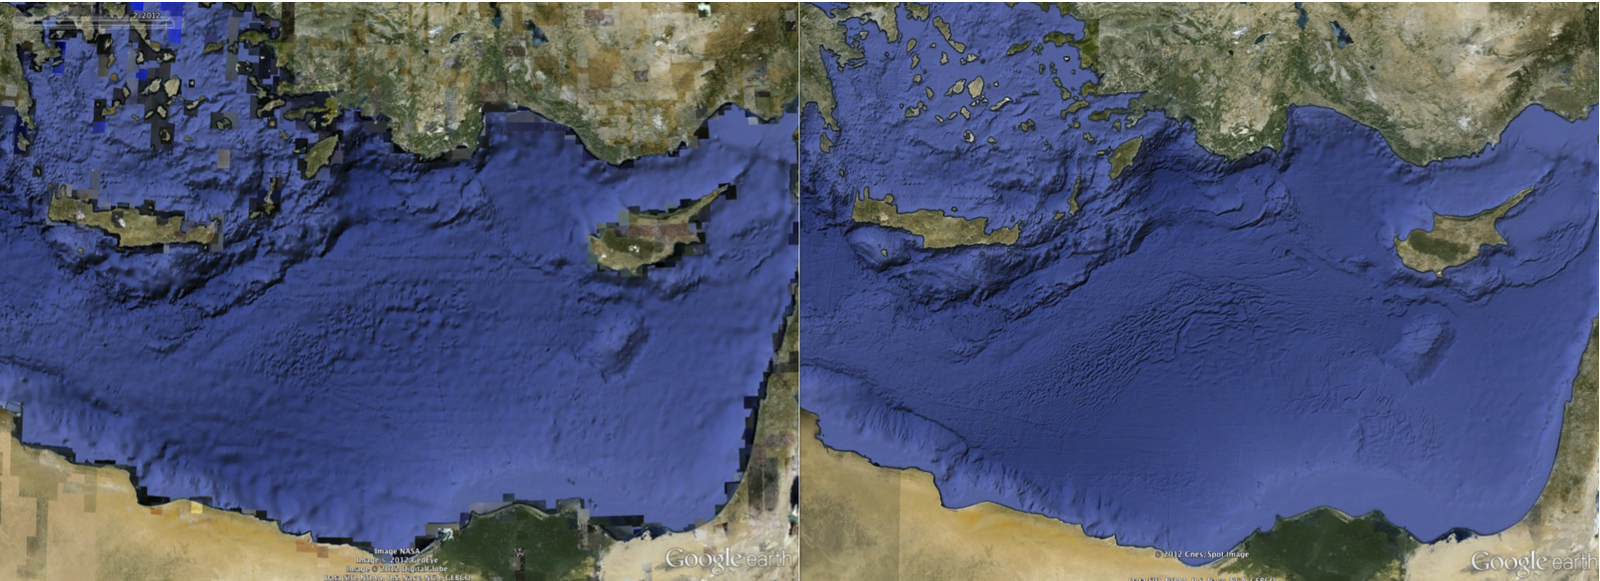 A Clearer View Of The Seafloor In Google Earth